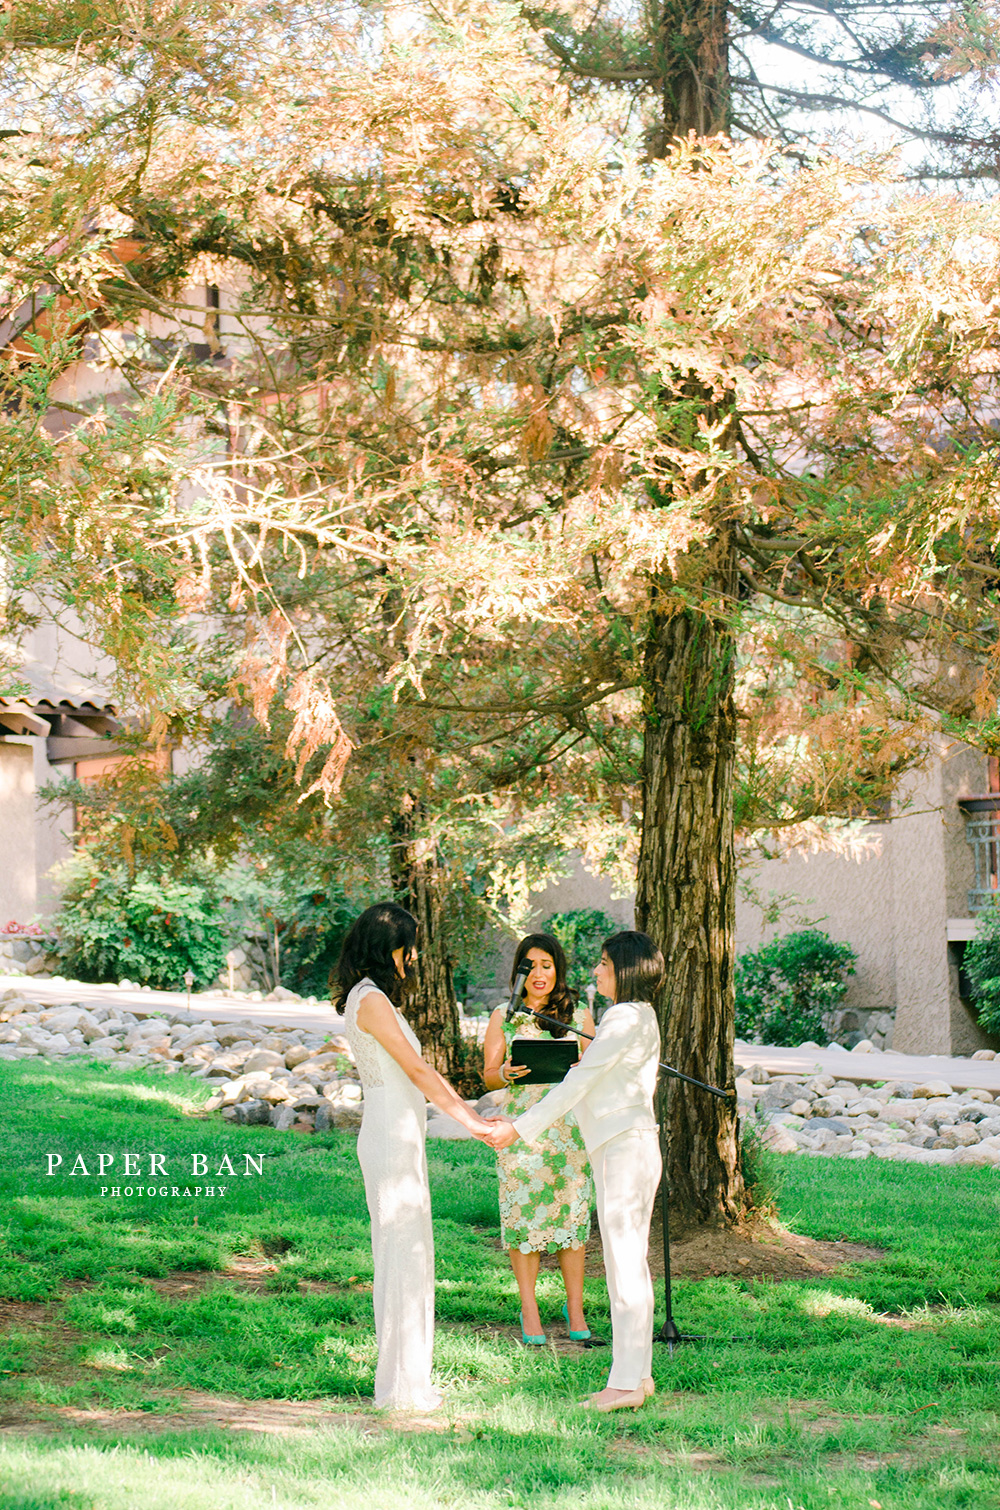 PaperBanPhotography_LosAngeles_LuciaAlexWedding_020